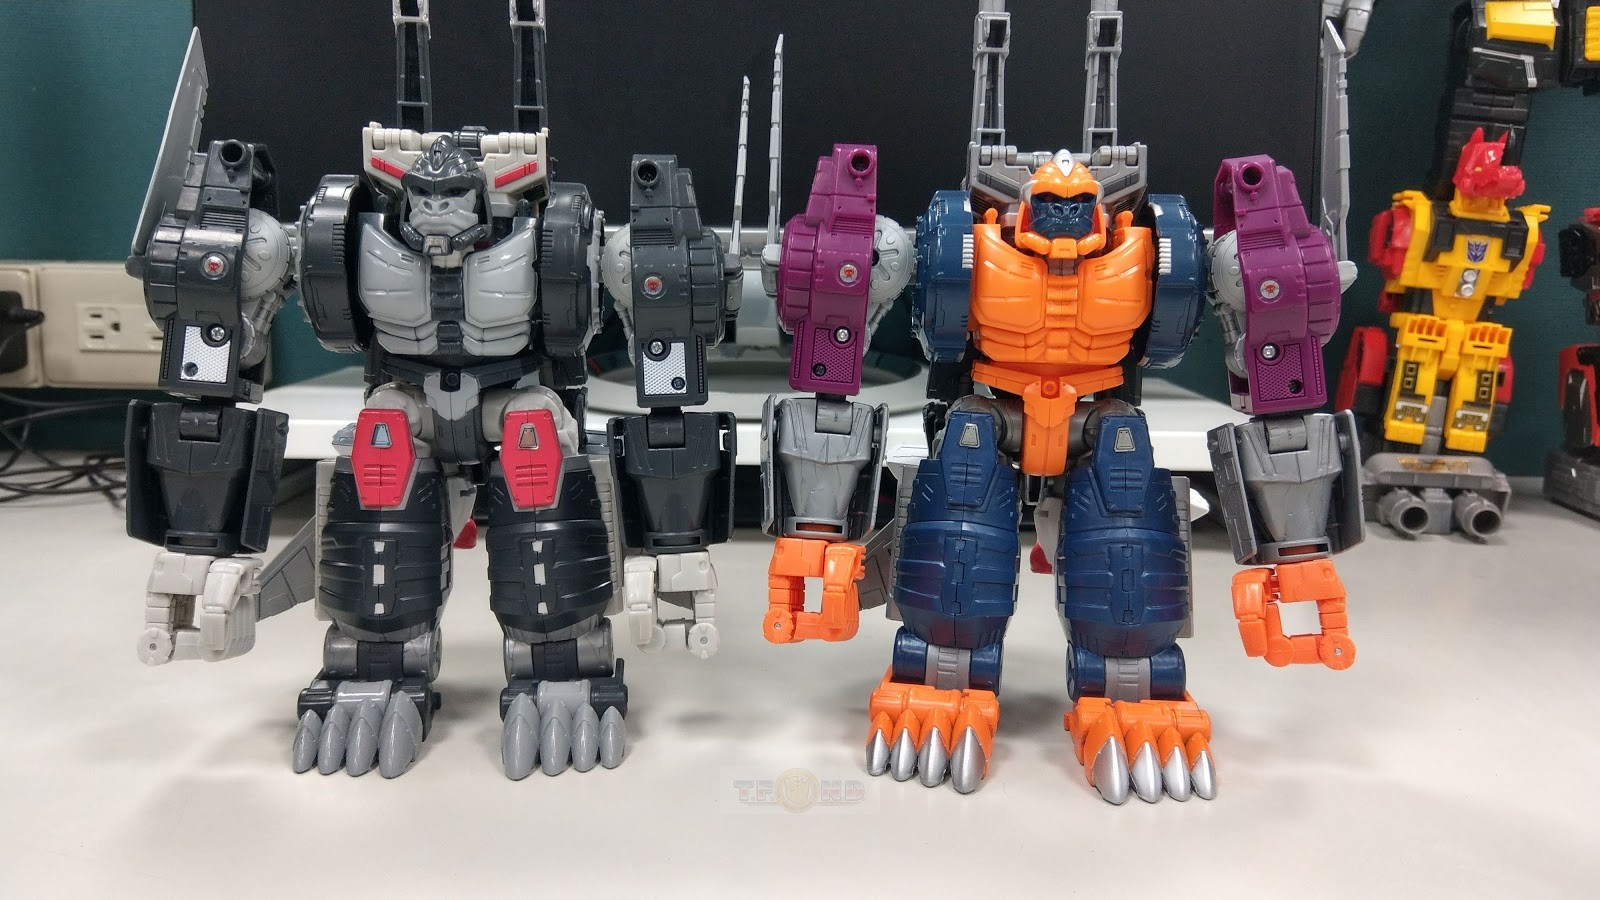 Transformers News: Transformers Power of the Primes San Diego Comic Con Throne of the Primes Pictorial and Video Review